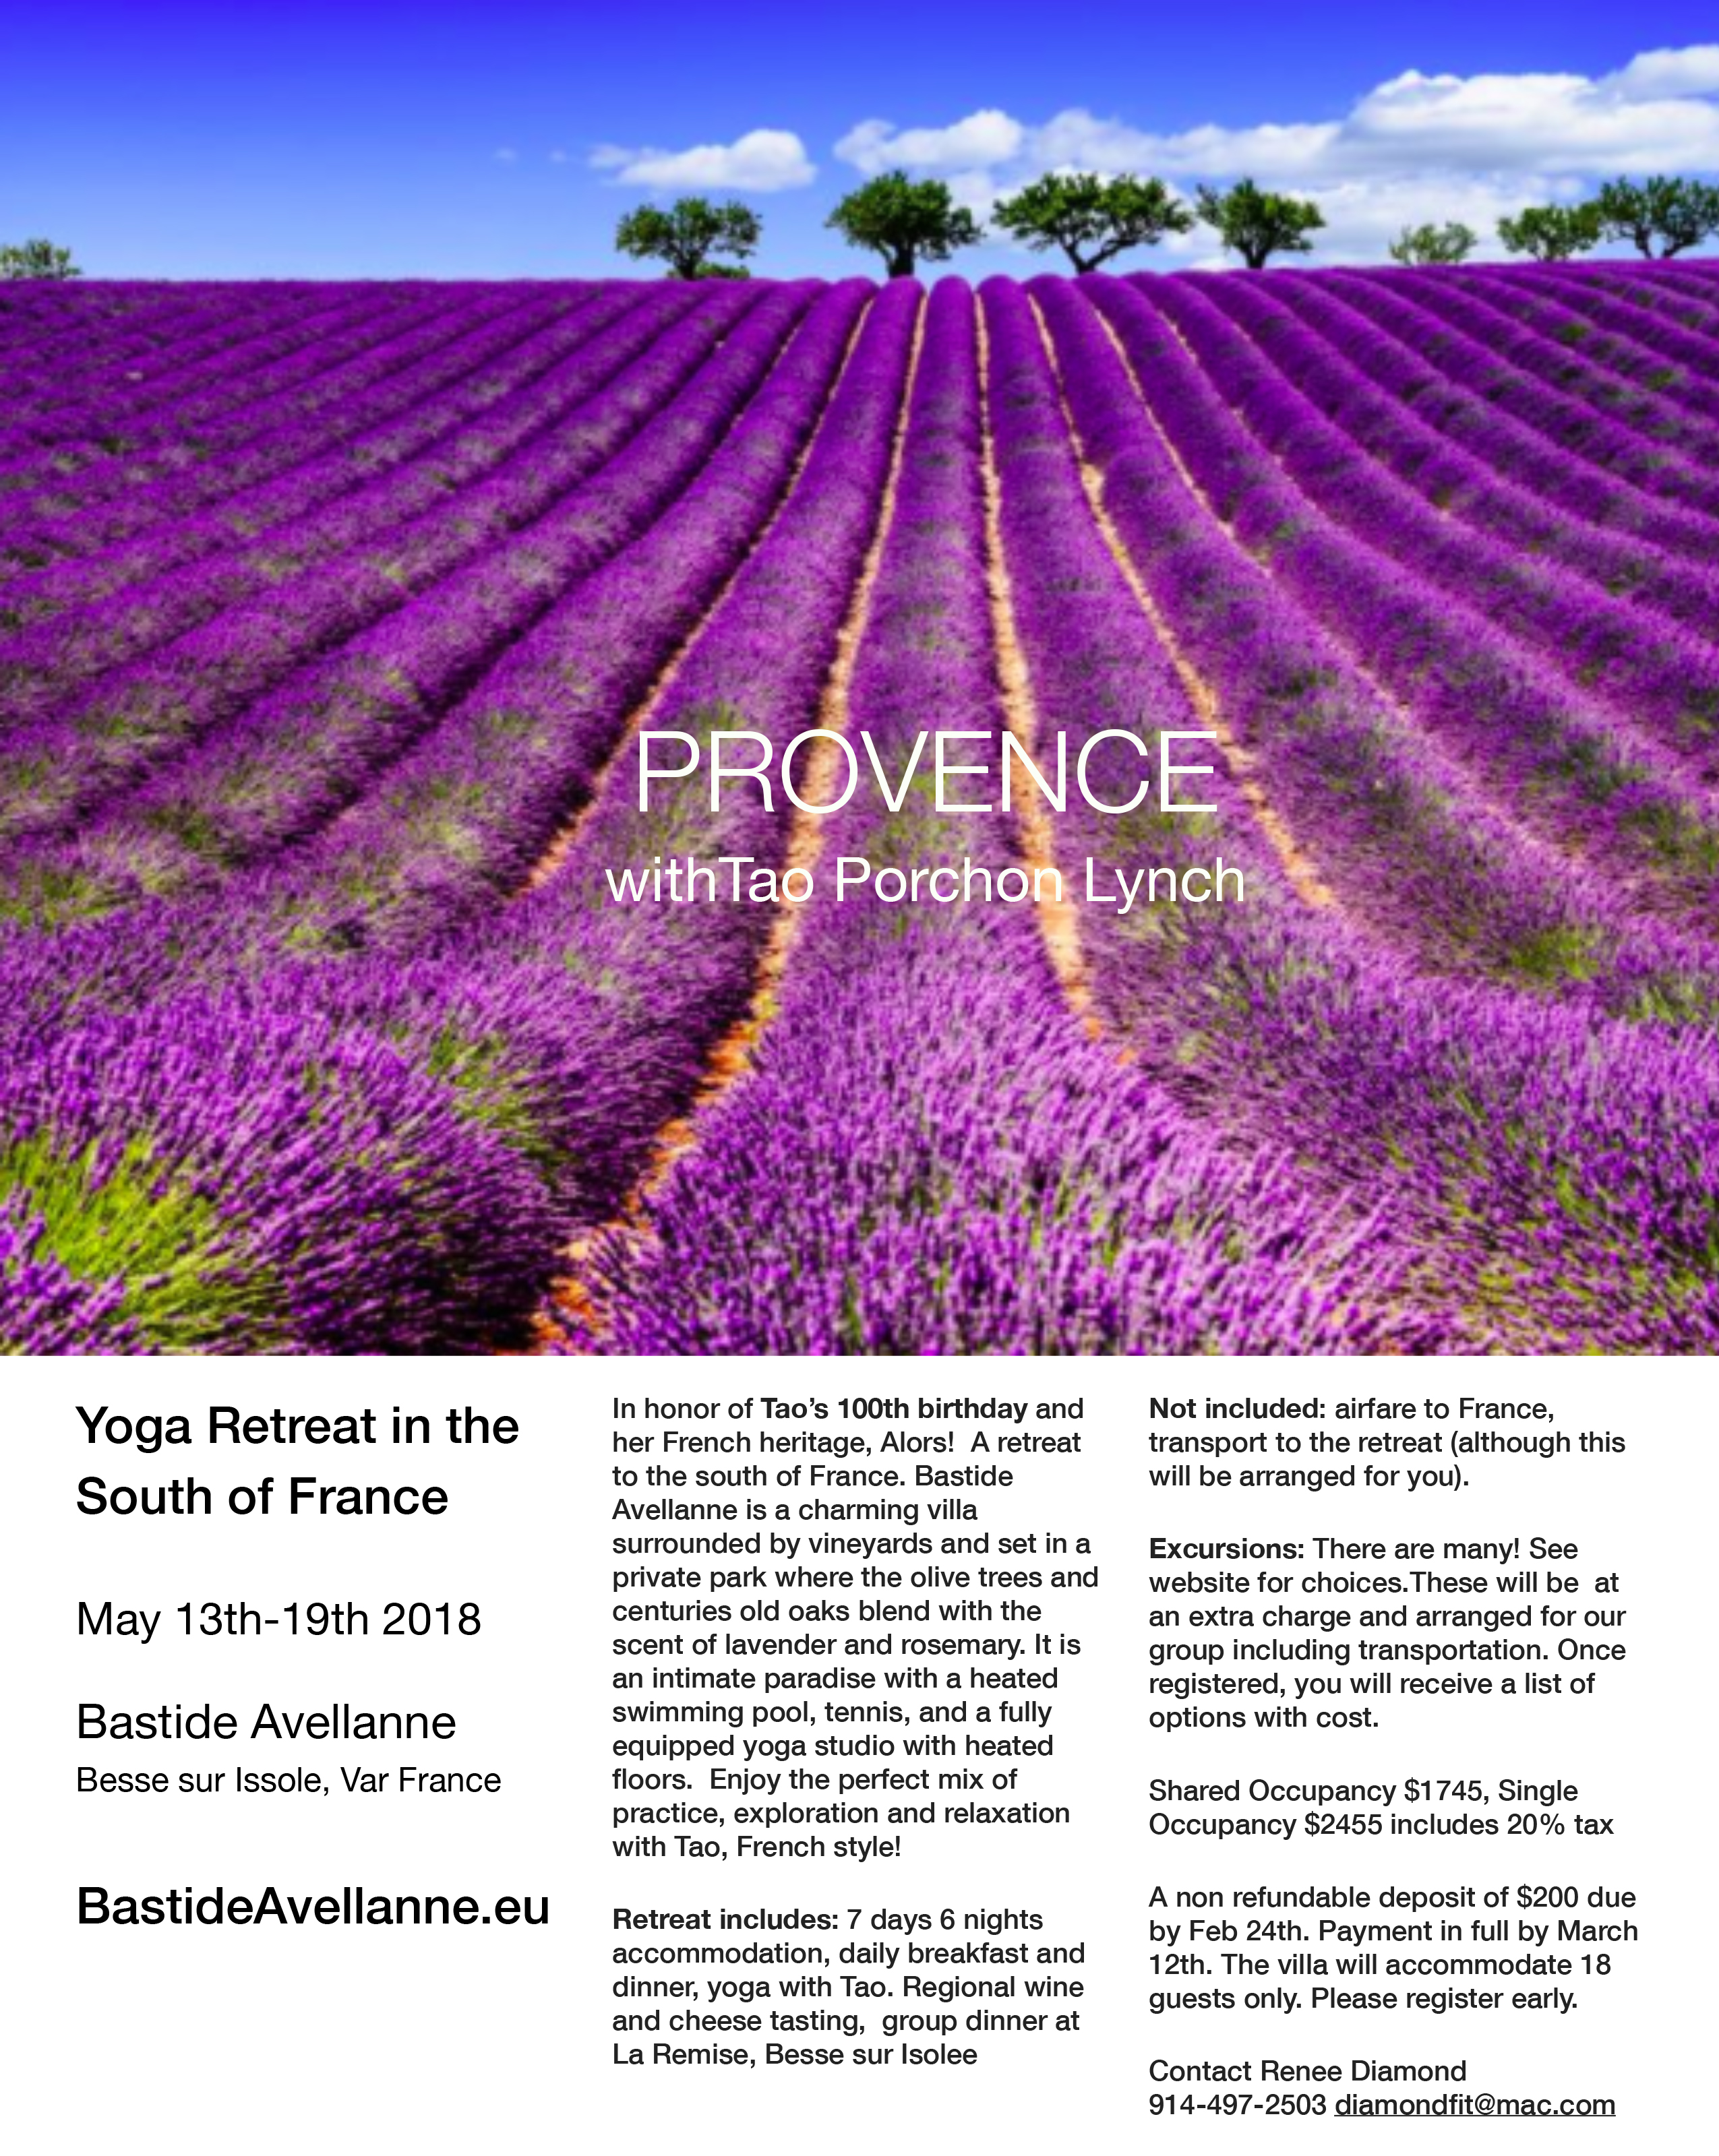 Provence with Tao Porchon Lynch